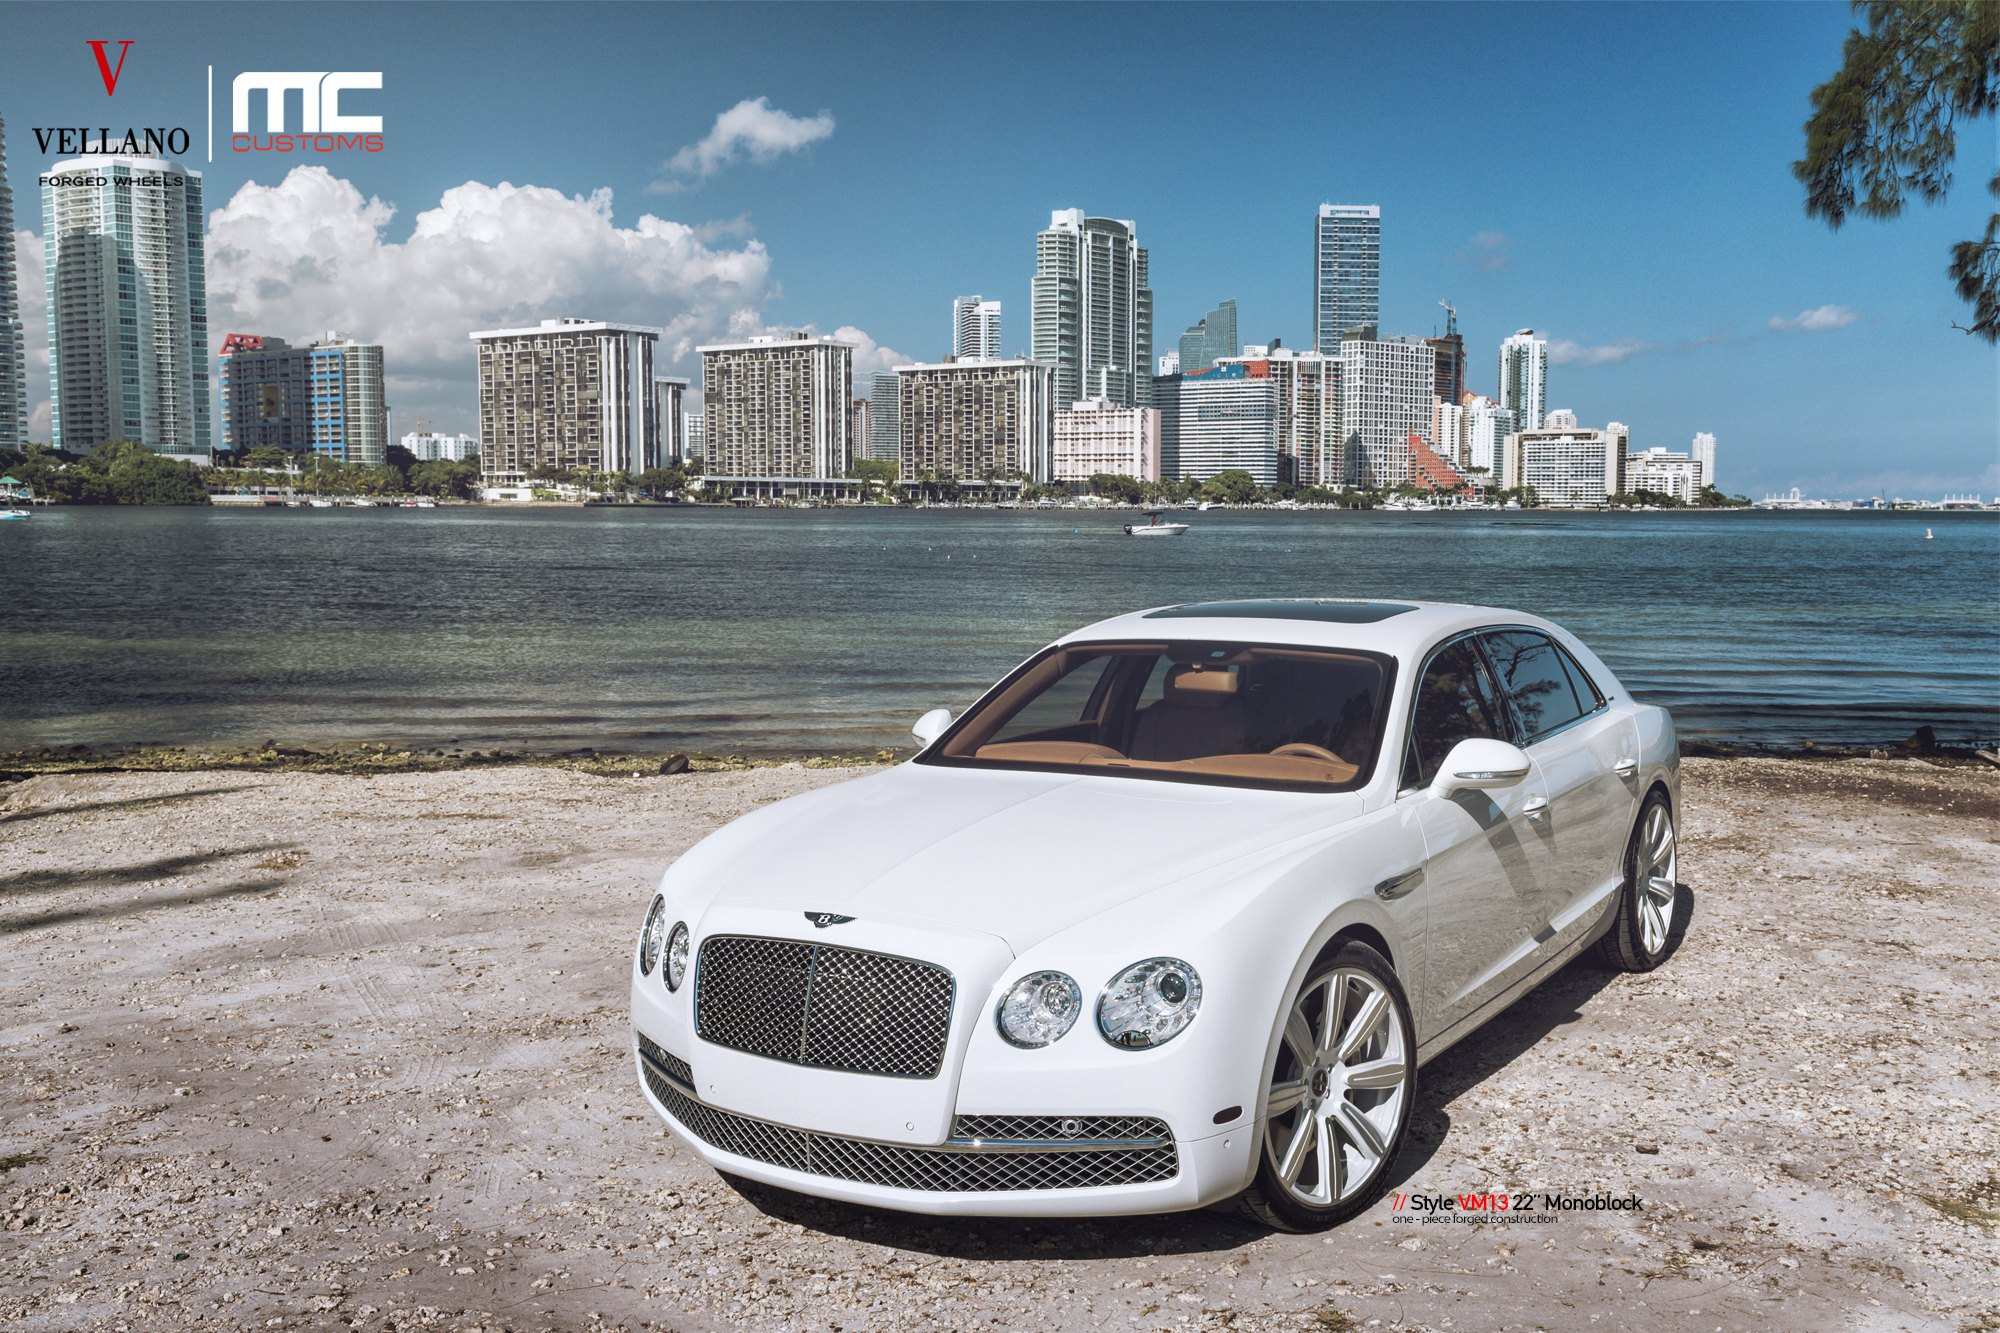 Chrystal Clear Headlights On White Bently Flying Spur Photo By Vellano